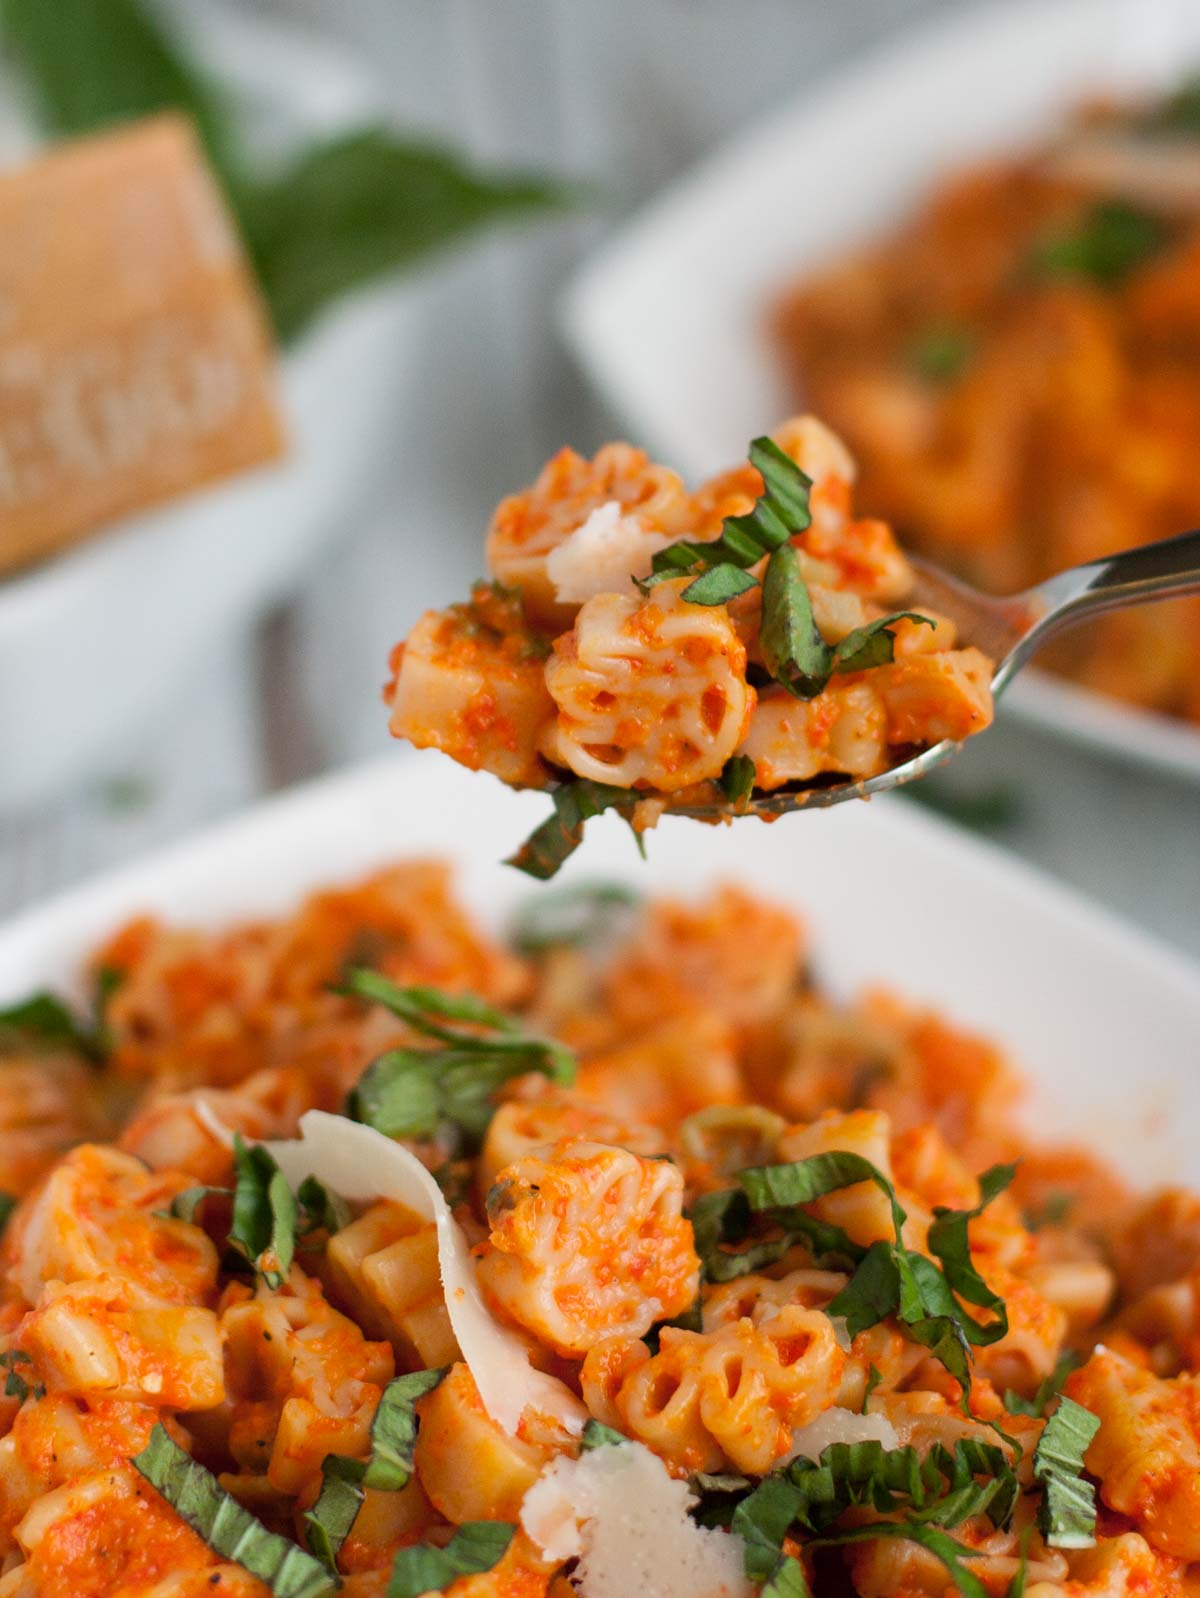 Creamy Roasted Red Pepper Pasta | WorldofPastasbilities.com | Easy and delicious pasta dish! Creamy Roasted Red Pepper Pasta is sweet and smoky alternative to your regular tomato sauce...enjoy!